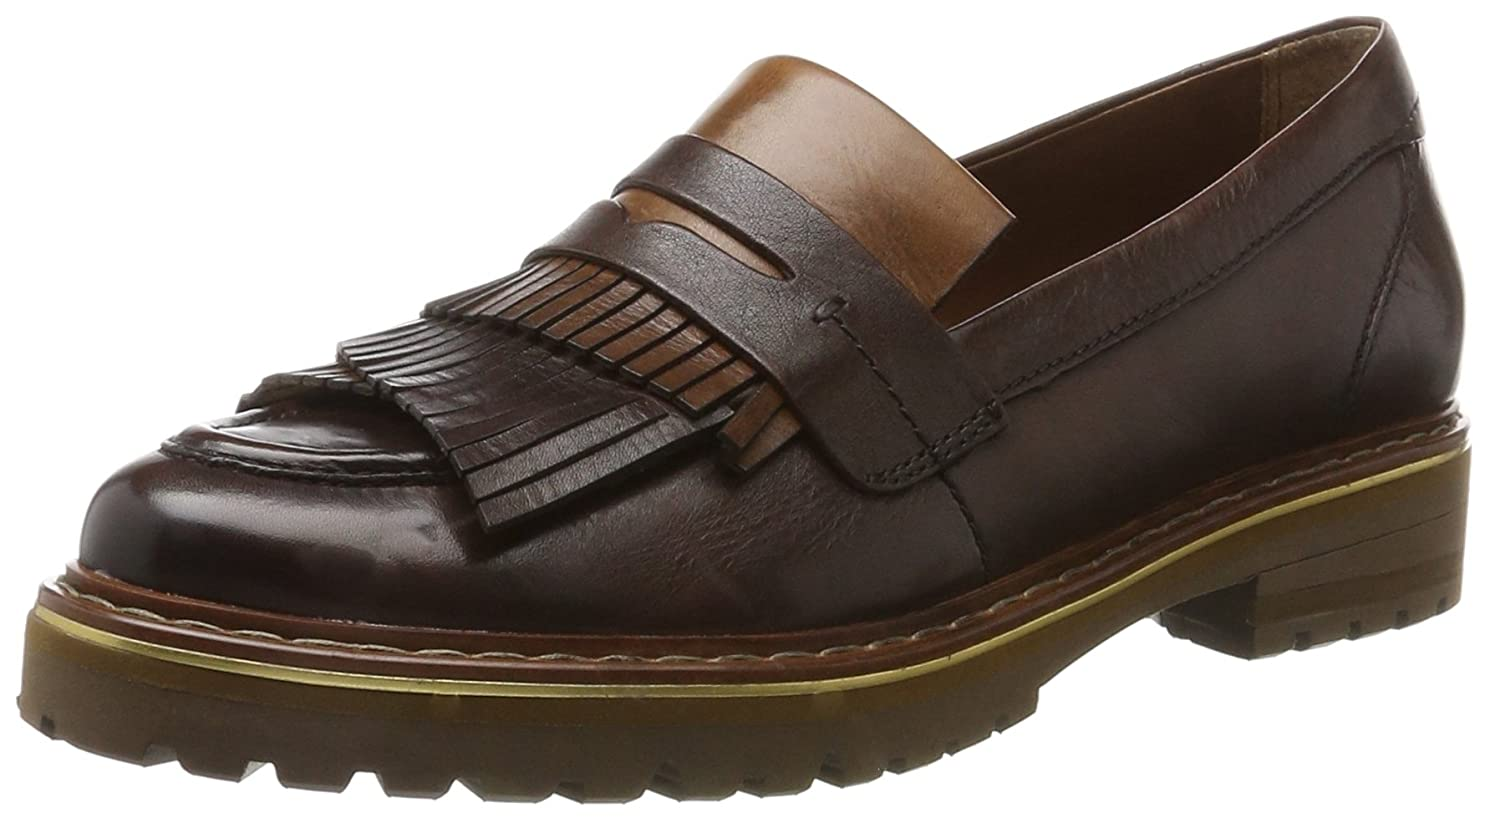 Be Natural Damen Slipper 24703 Slipper Damen Braun (Cafe) c698cf